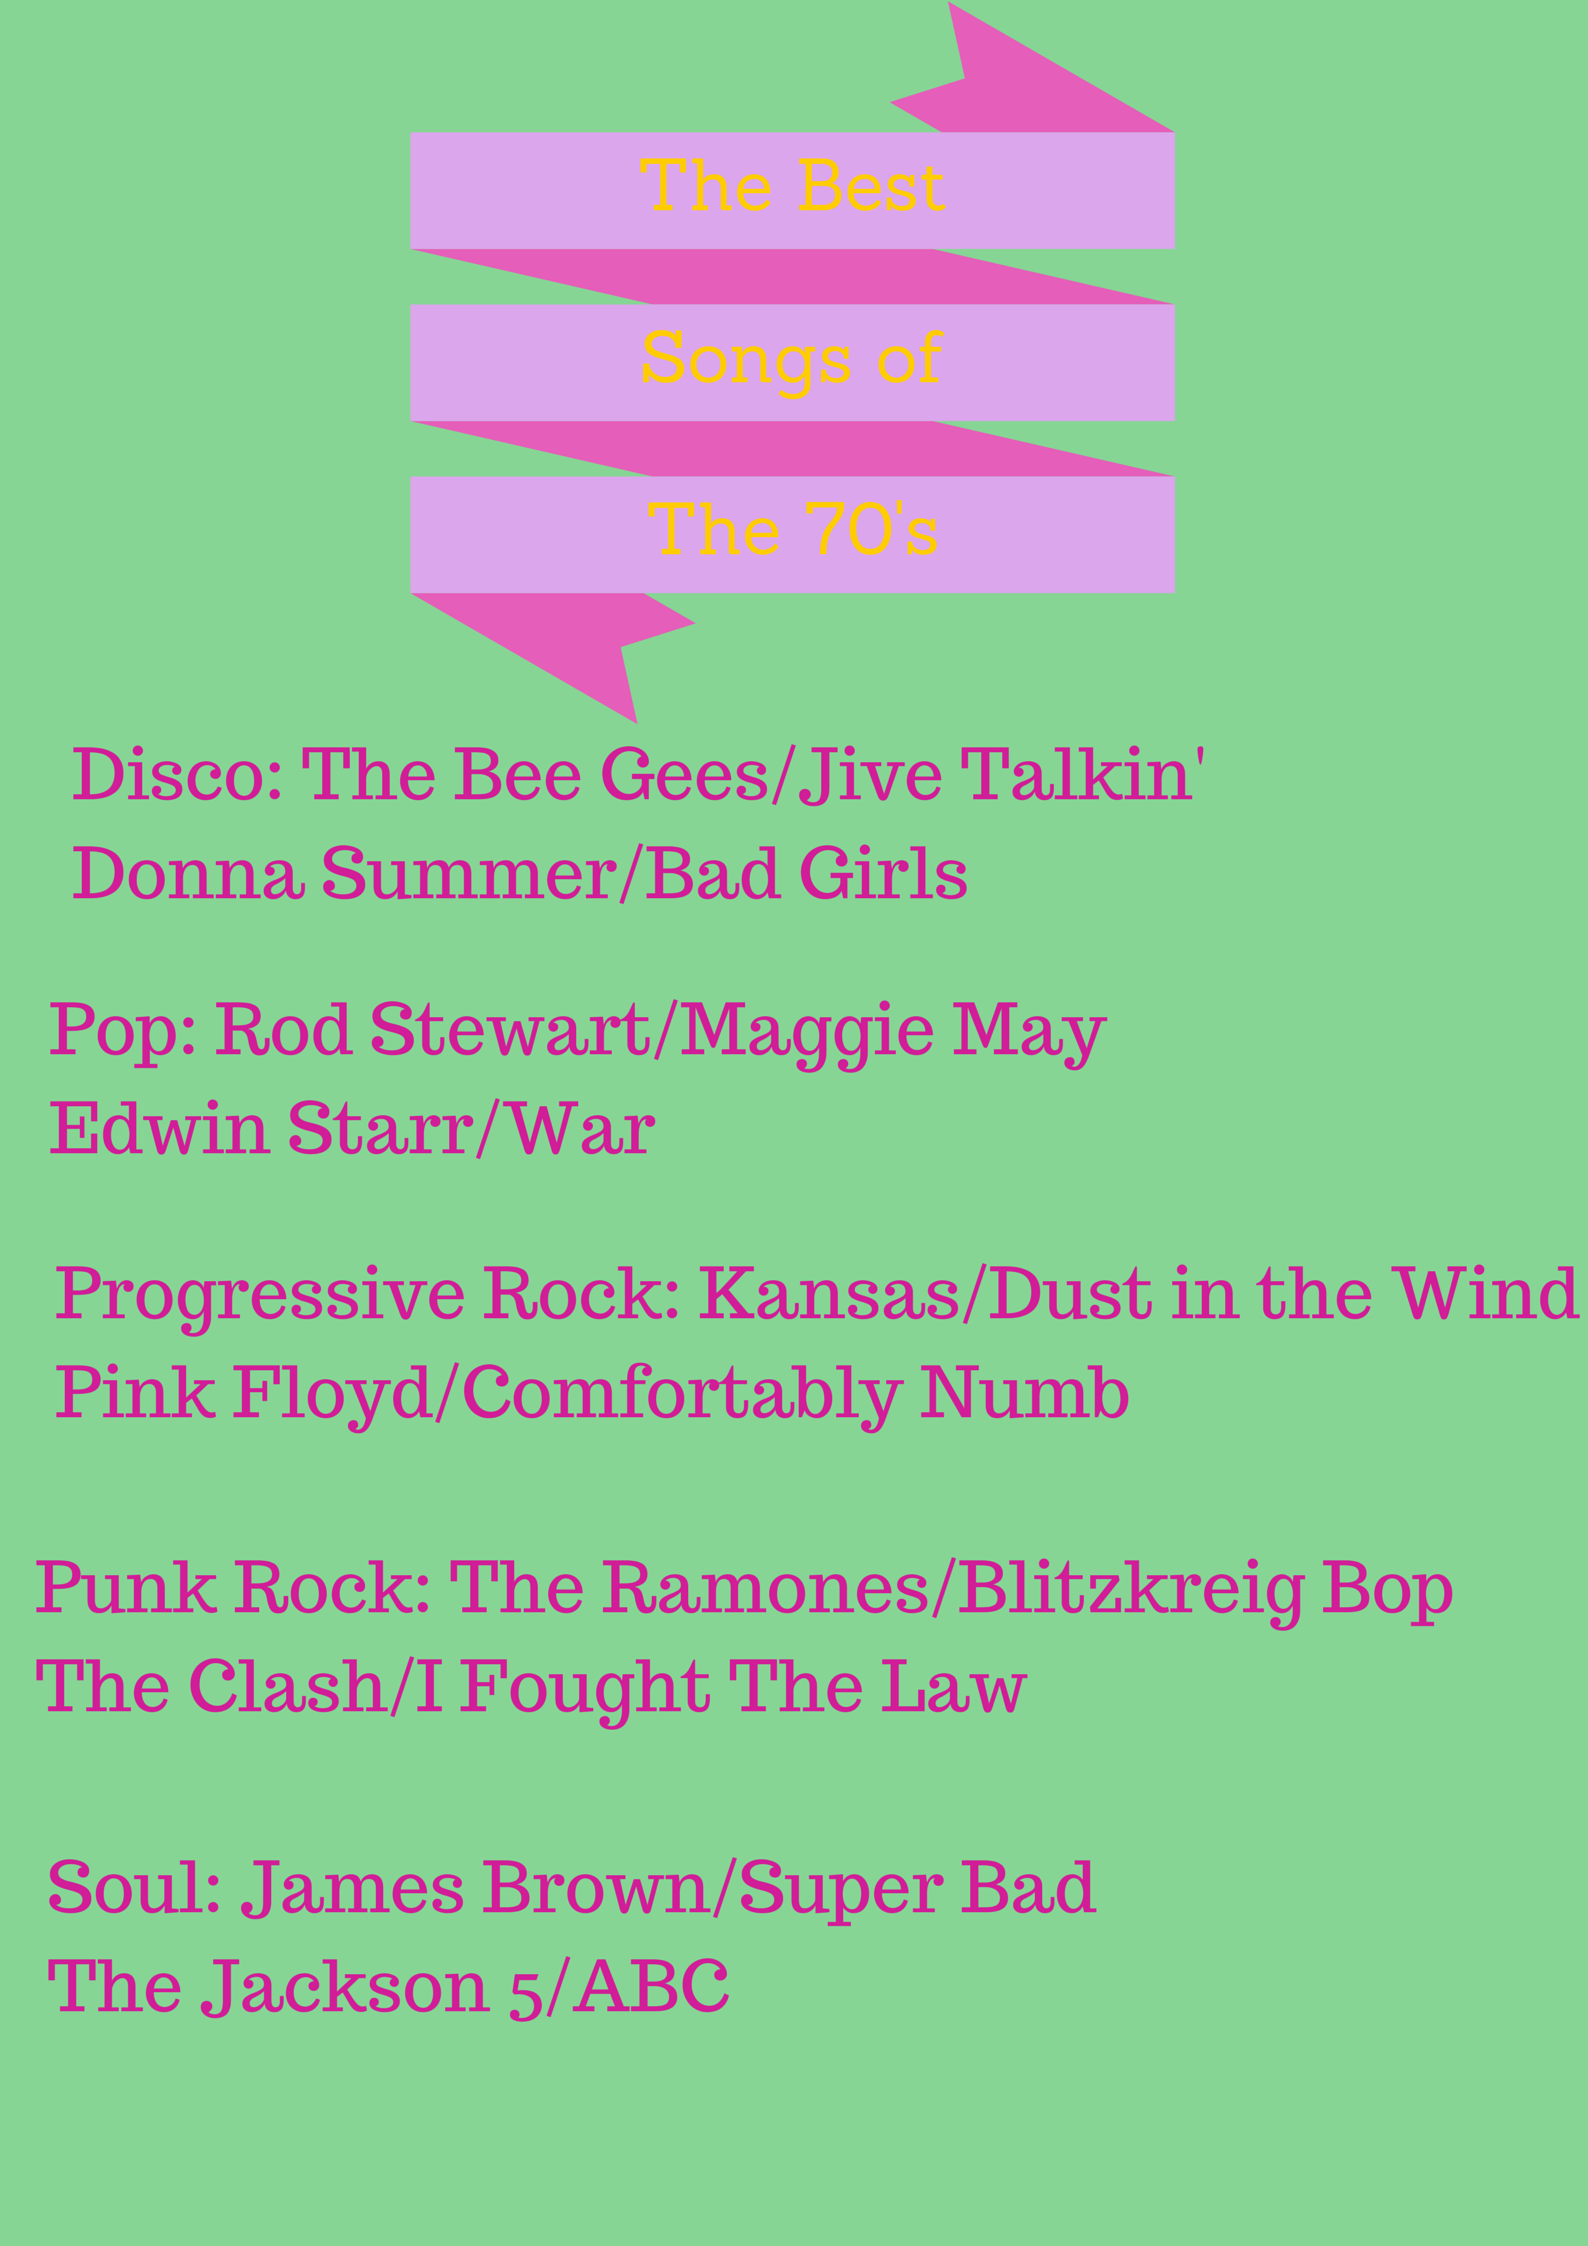 Best Songs Of the 60s (1)